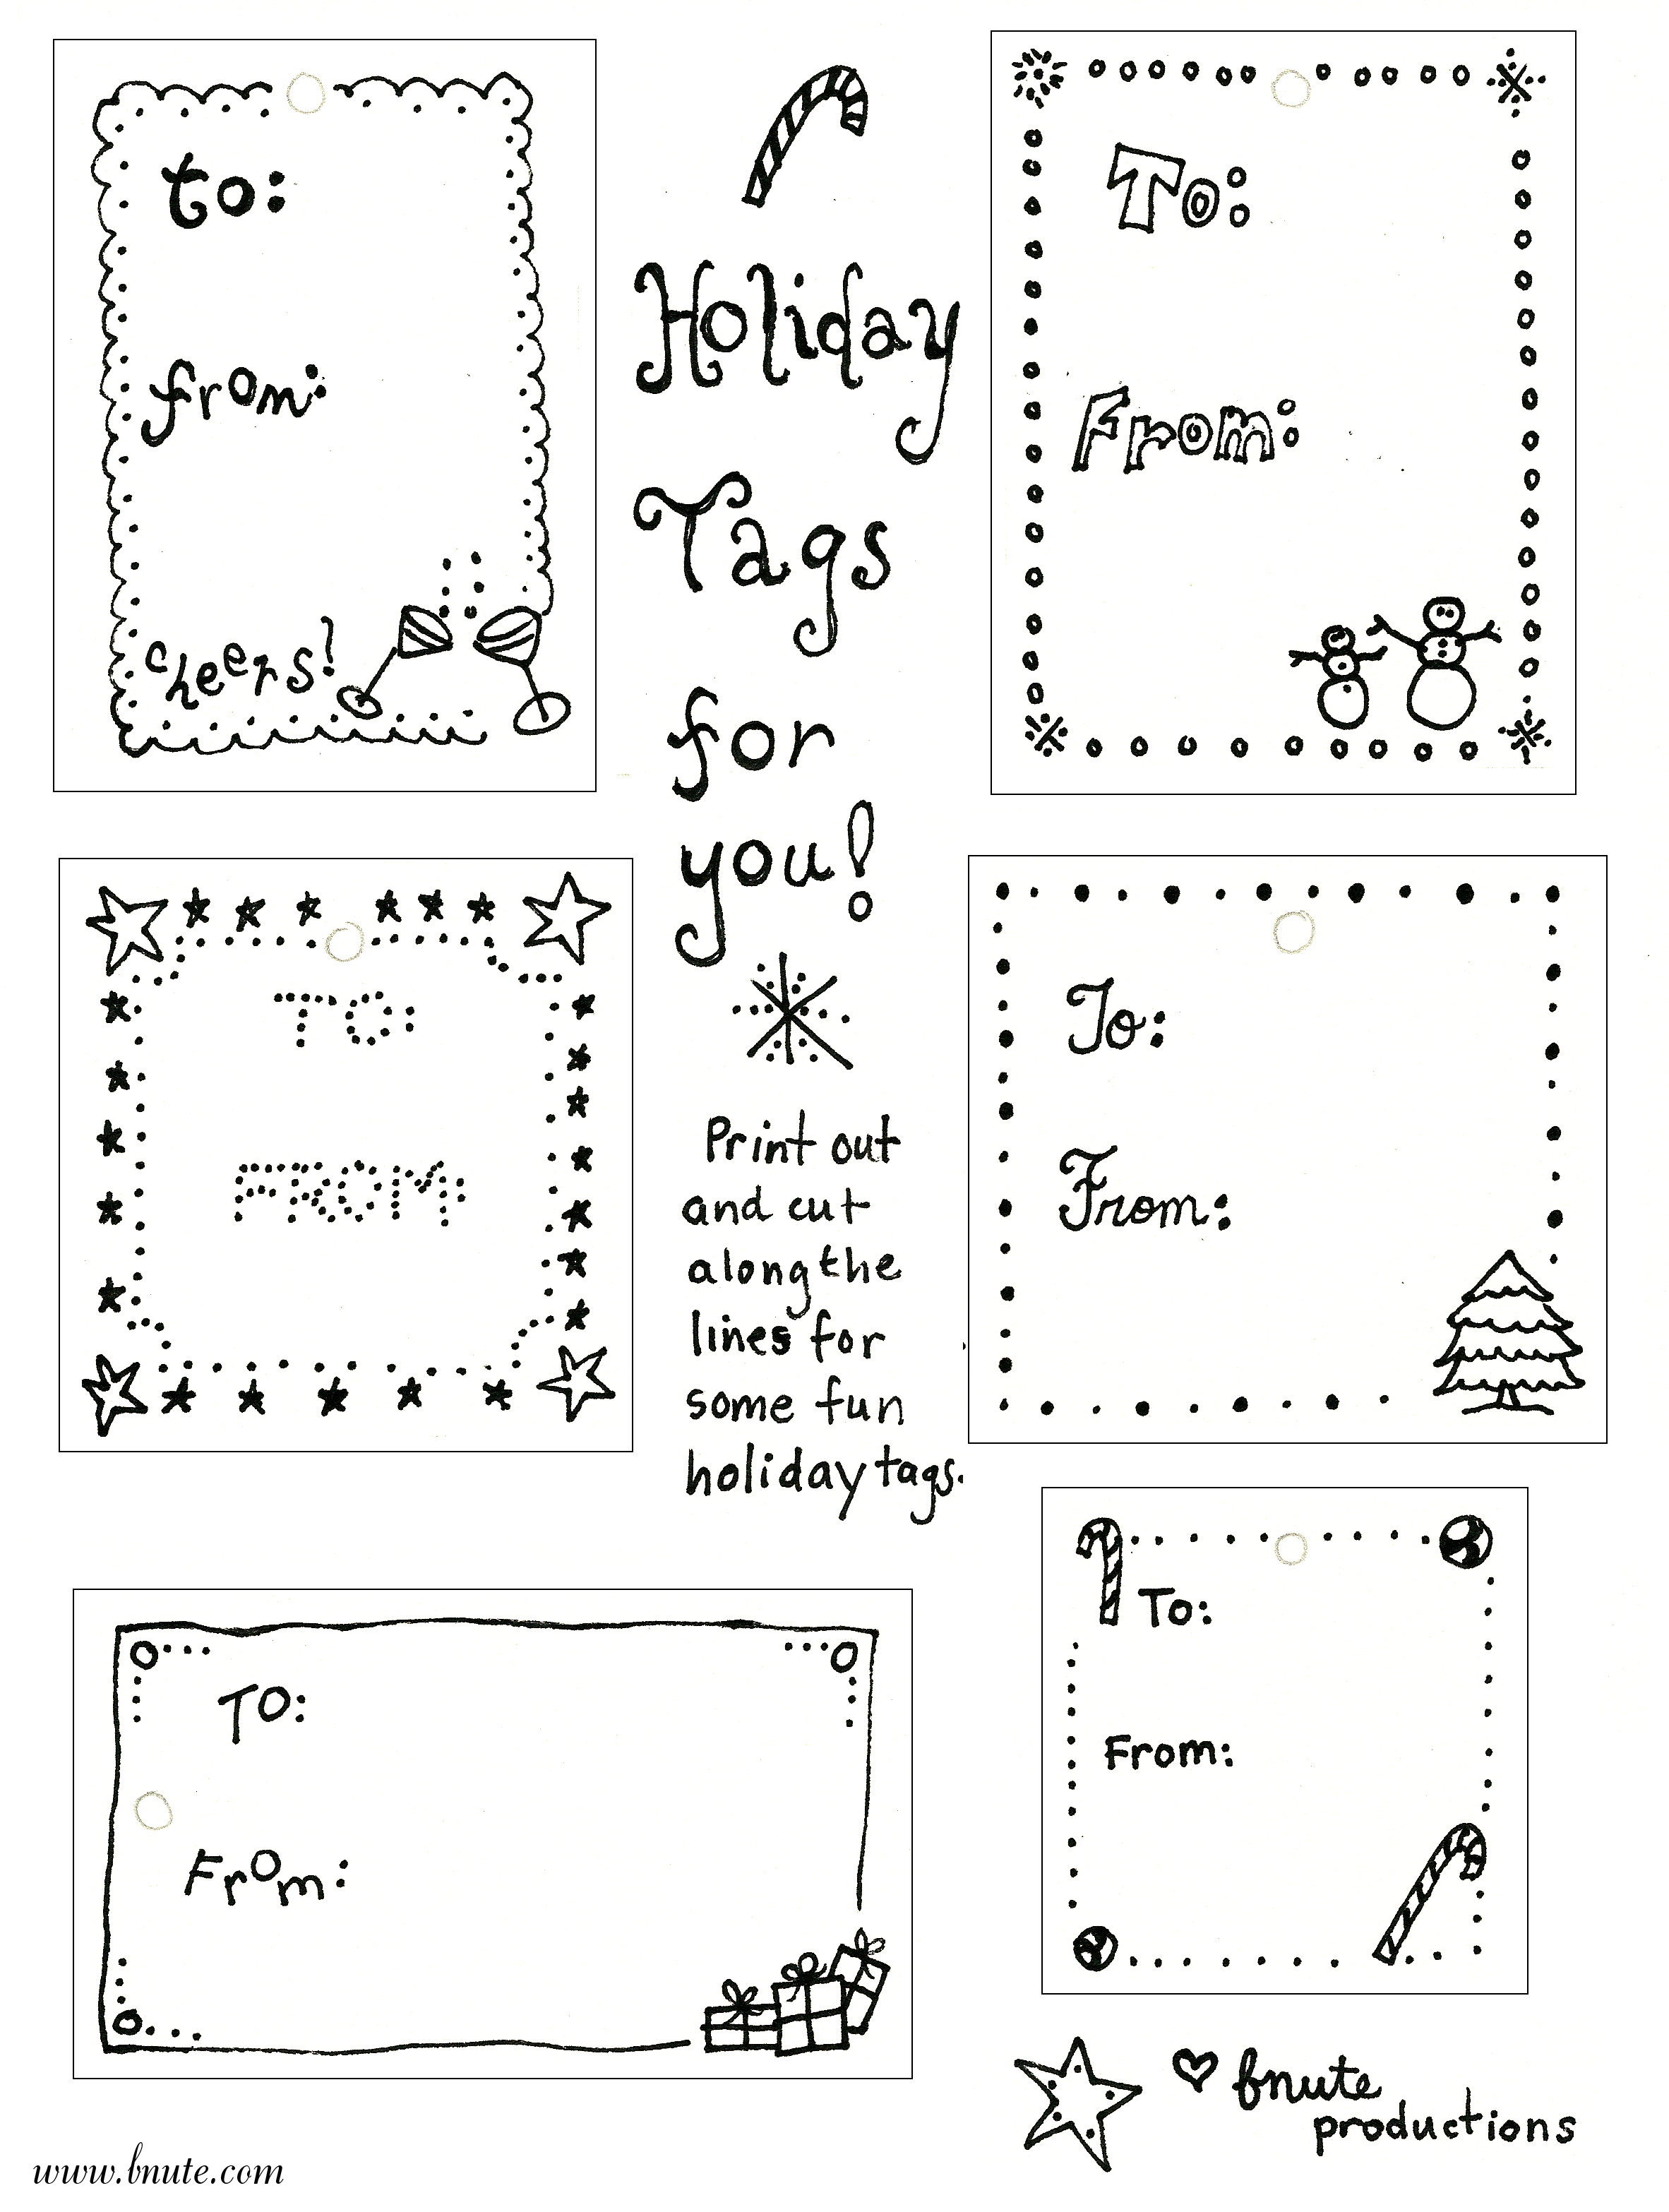 picture about Printable Christmas Tags Black and White identified as bnute productions: Printable Trip Tags for that Previous